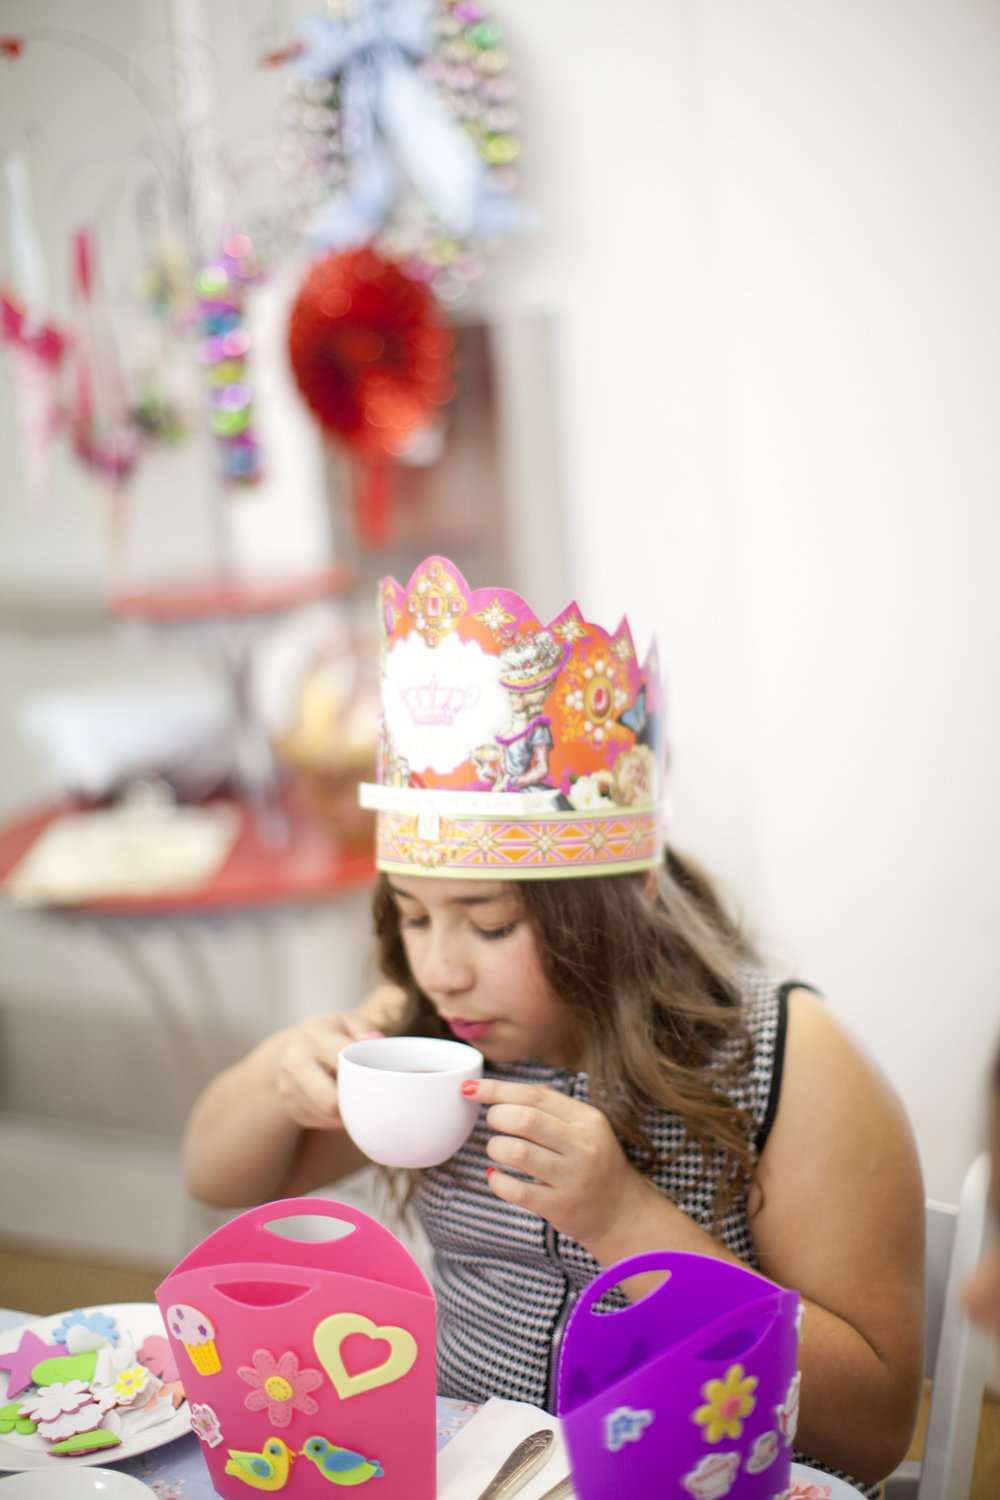 sophia_tea_party_crown_and_crumpet_san_francisco_photography_035.jpg